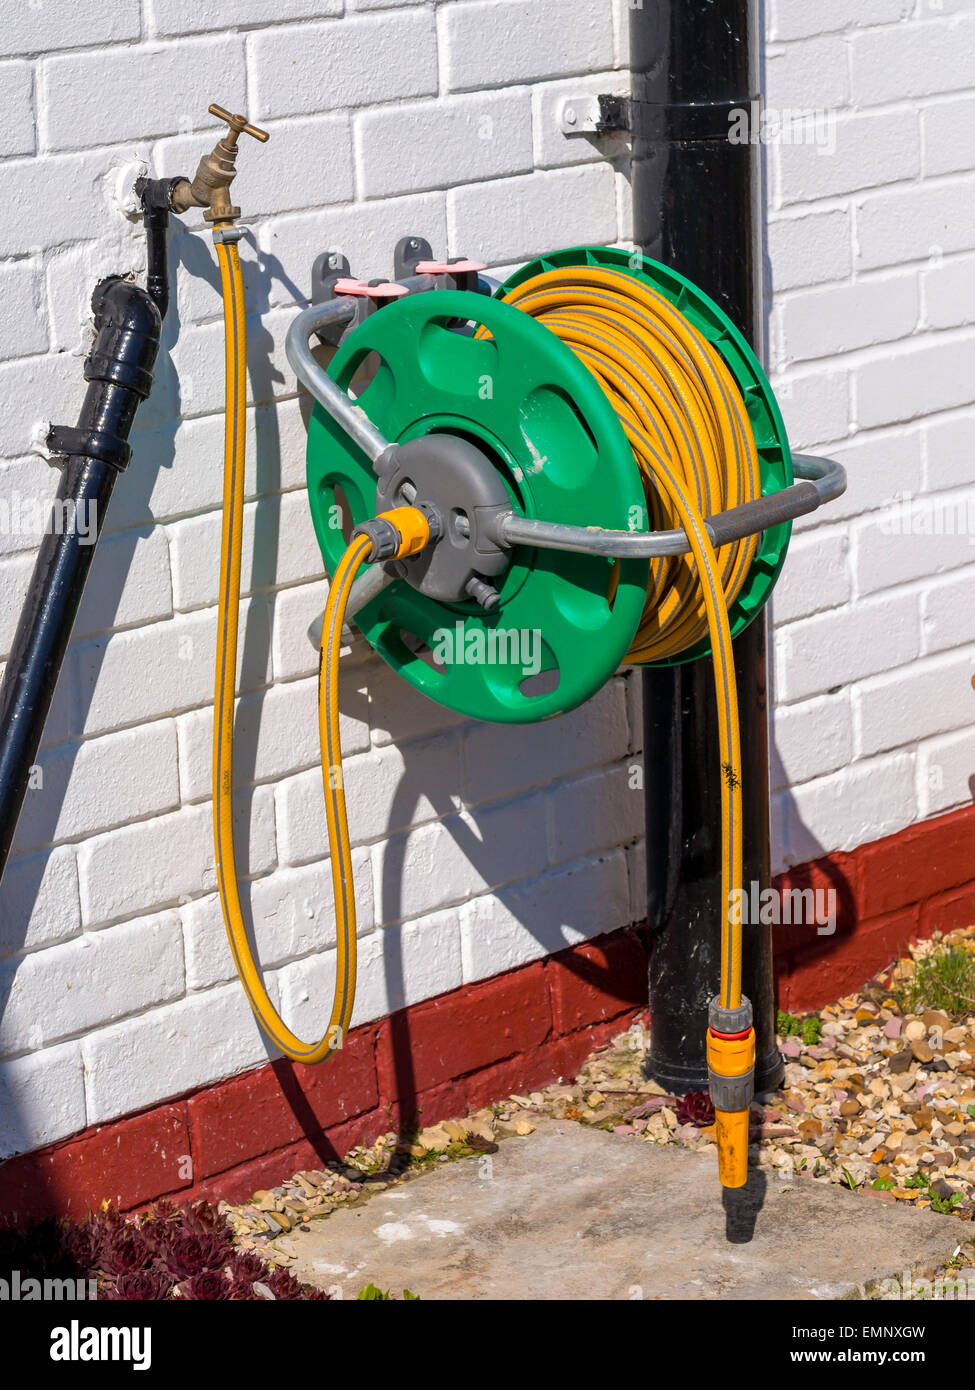 A Garden Hose Reel With Yellow Kink Resisting Hose Wall Mounted For  Convenient Deployment   Stock